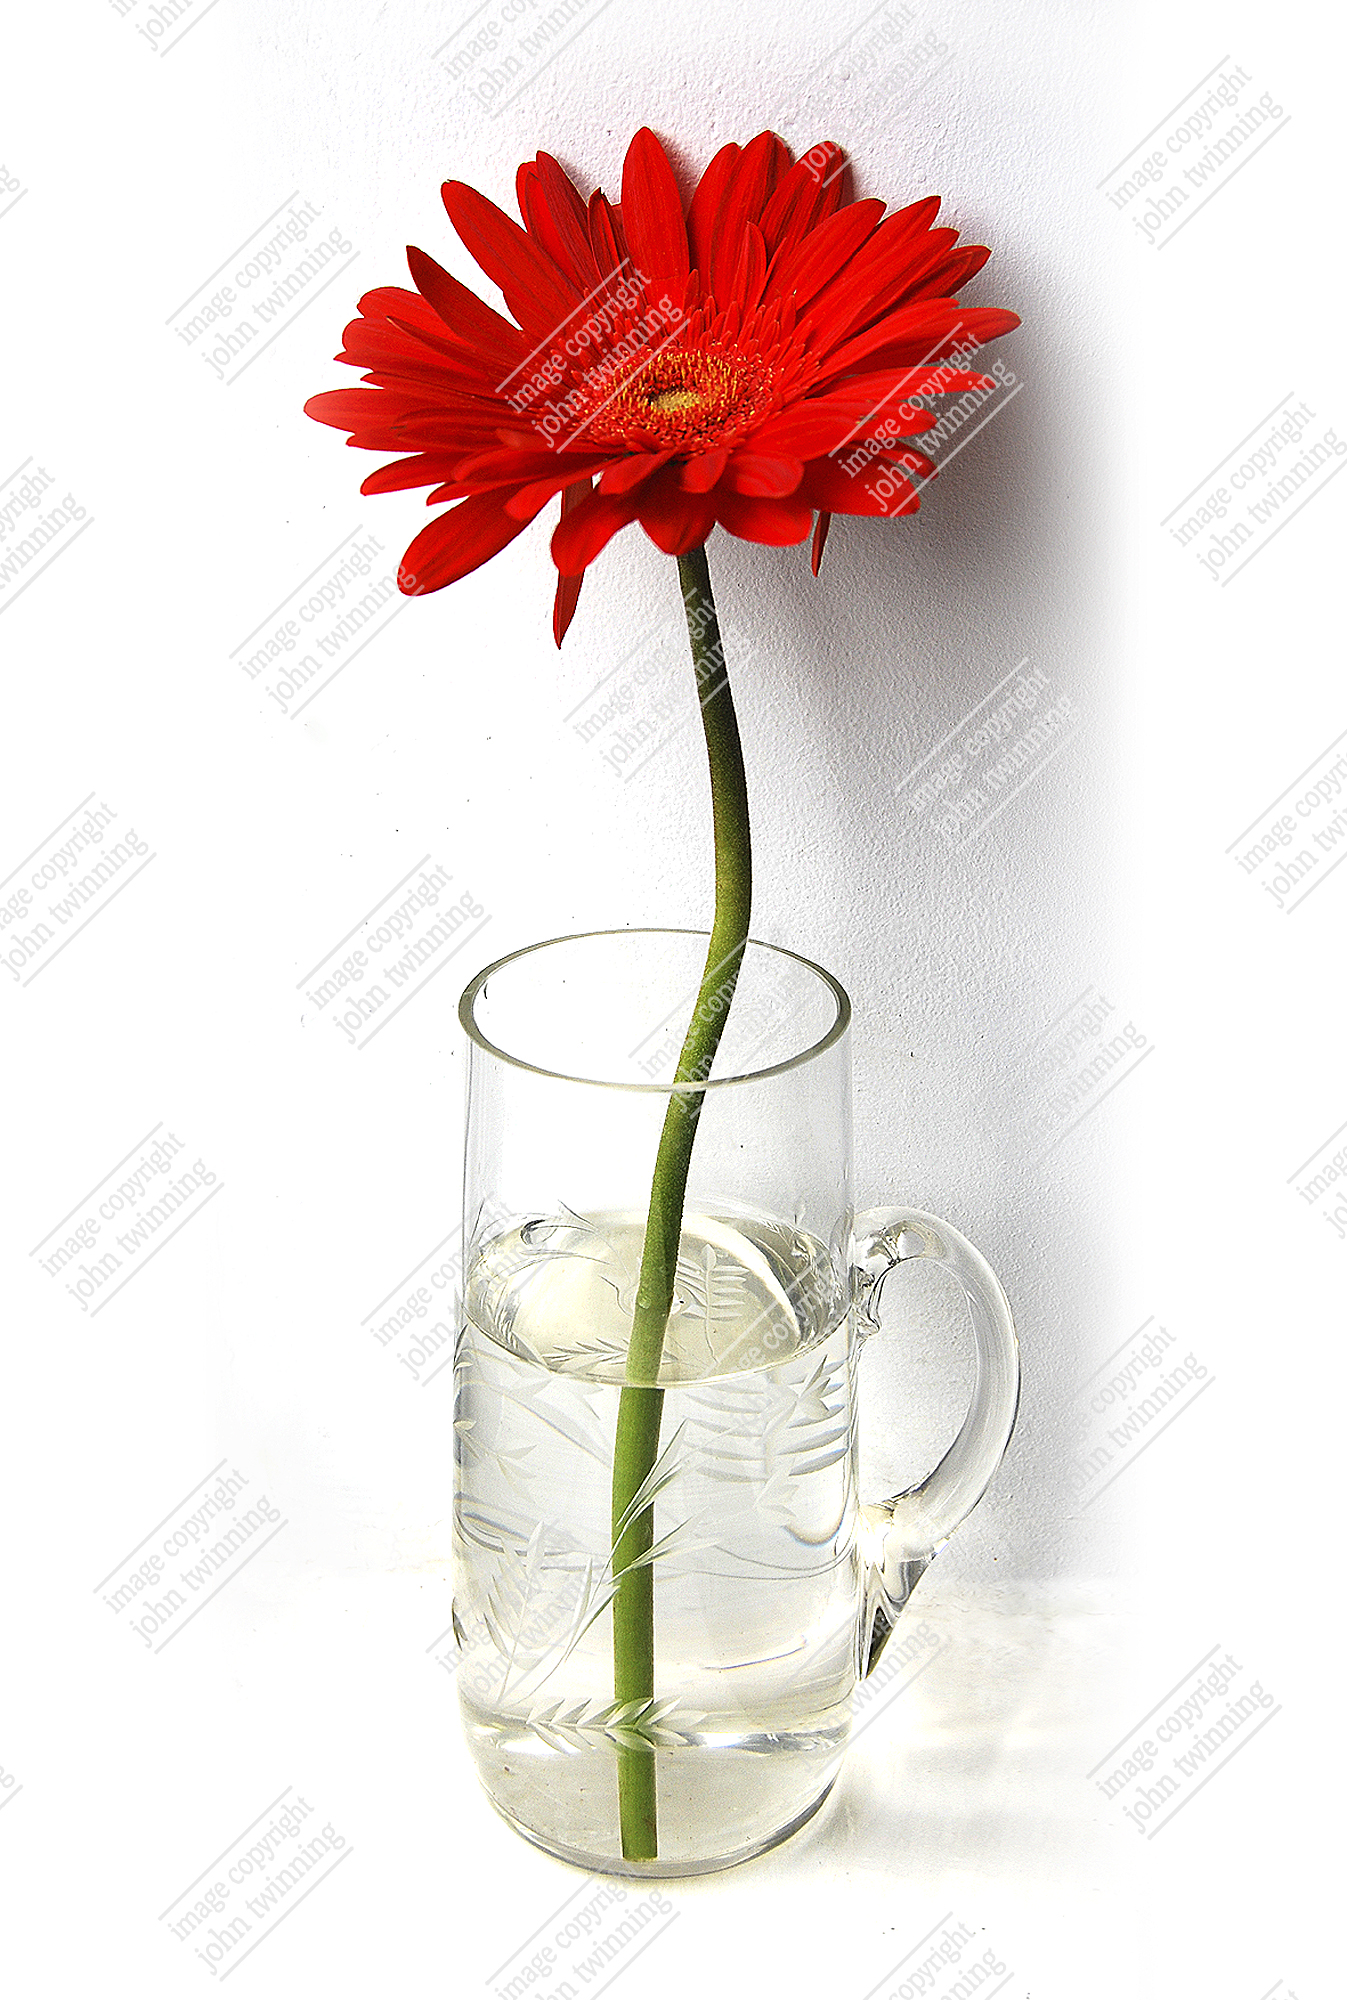 Red Gerbera in glass (photograph)